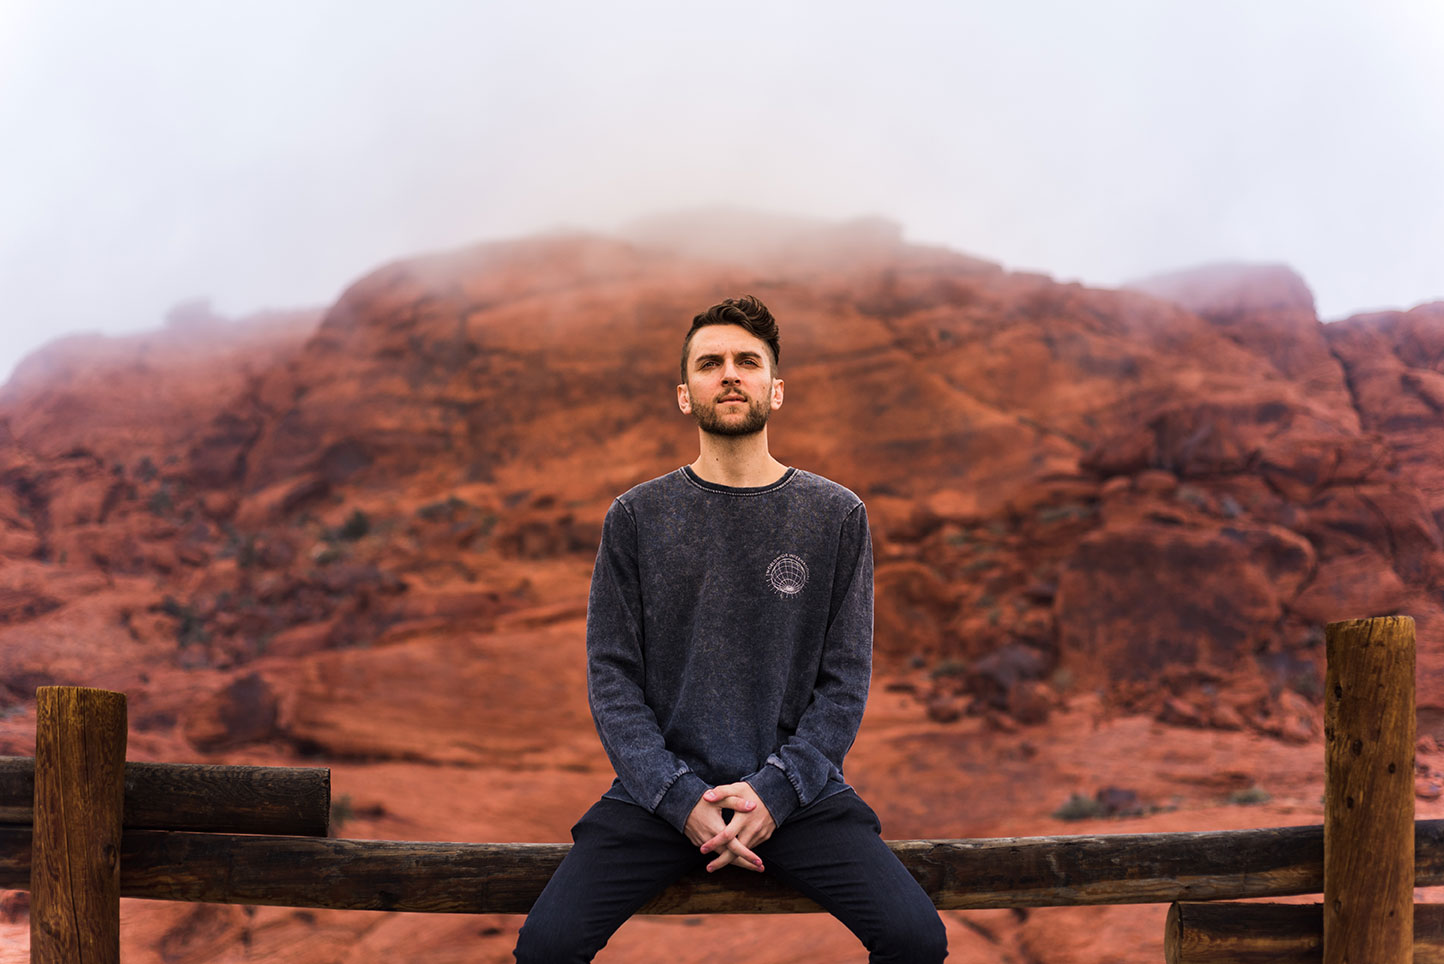 Portrait Photography, Red Rock Canyon, Las Vegas, Nevada, Lifestyle Portrait Photographer, Daniel Britton